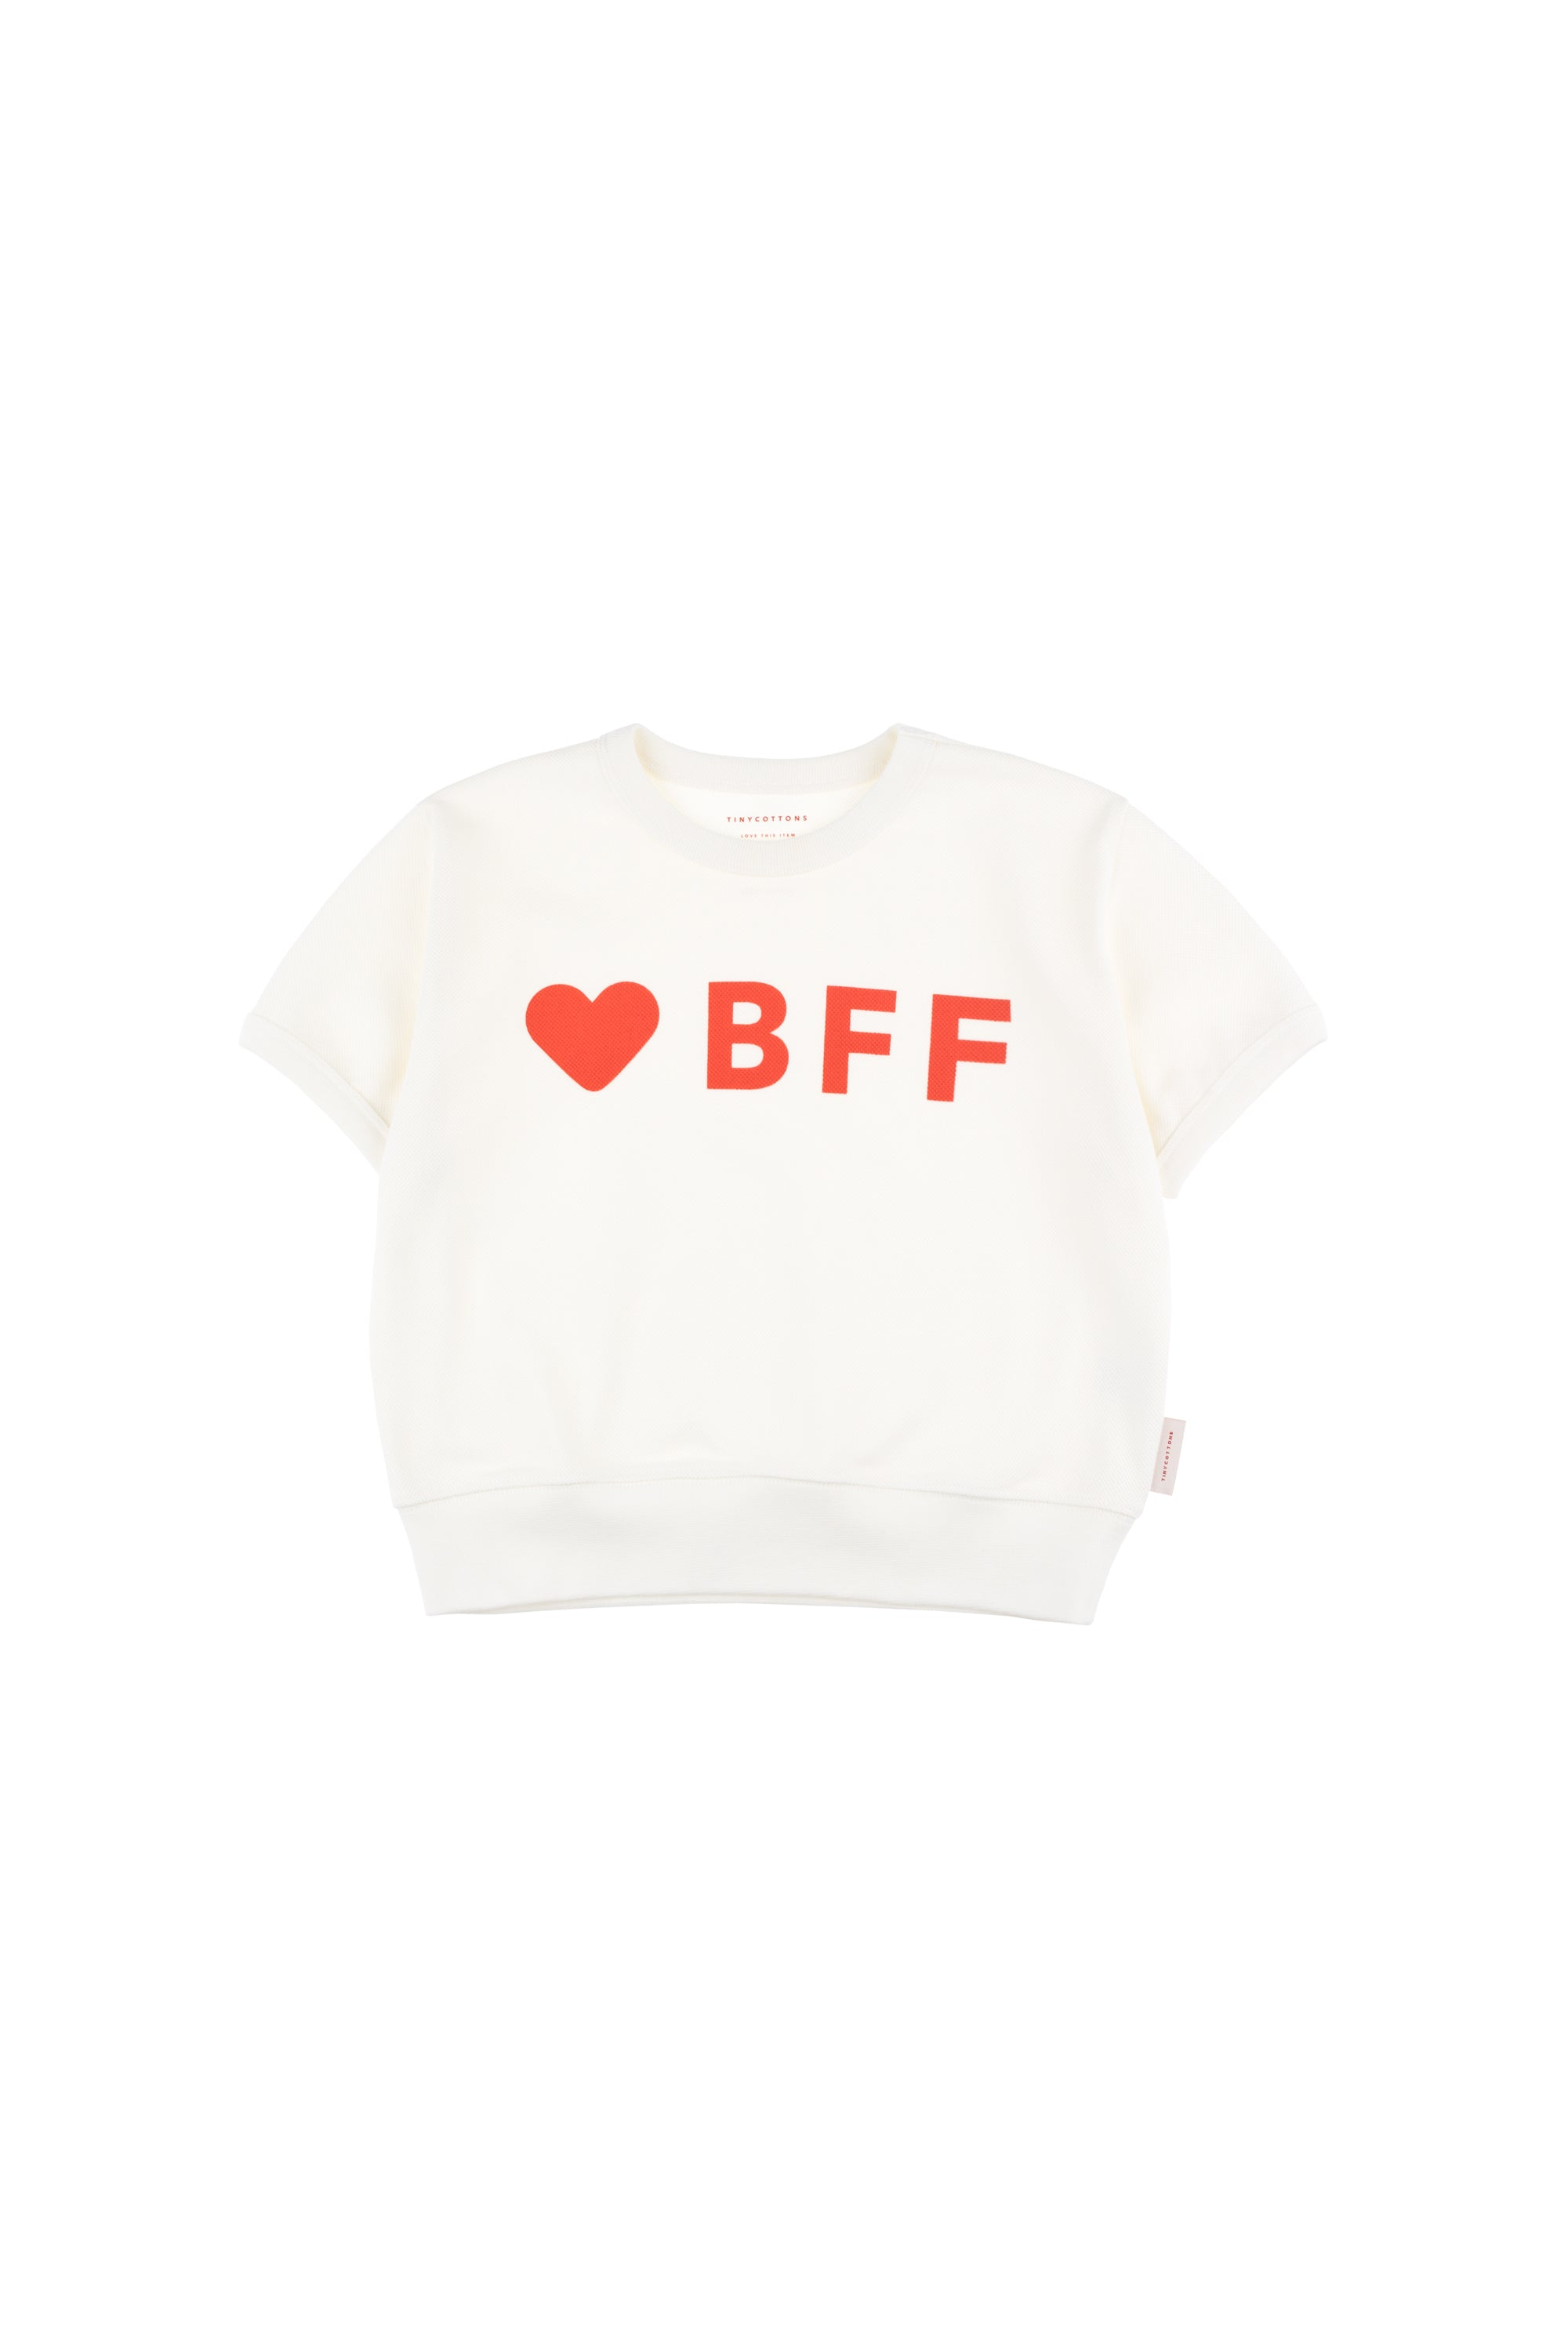 Tiny Cottons 'BFF' Sweatshirt - Light Red/Red